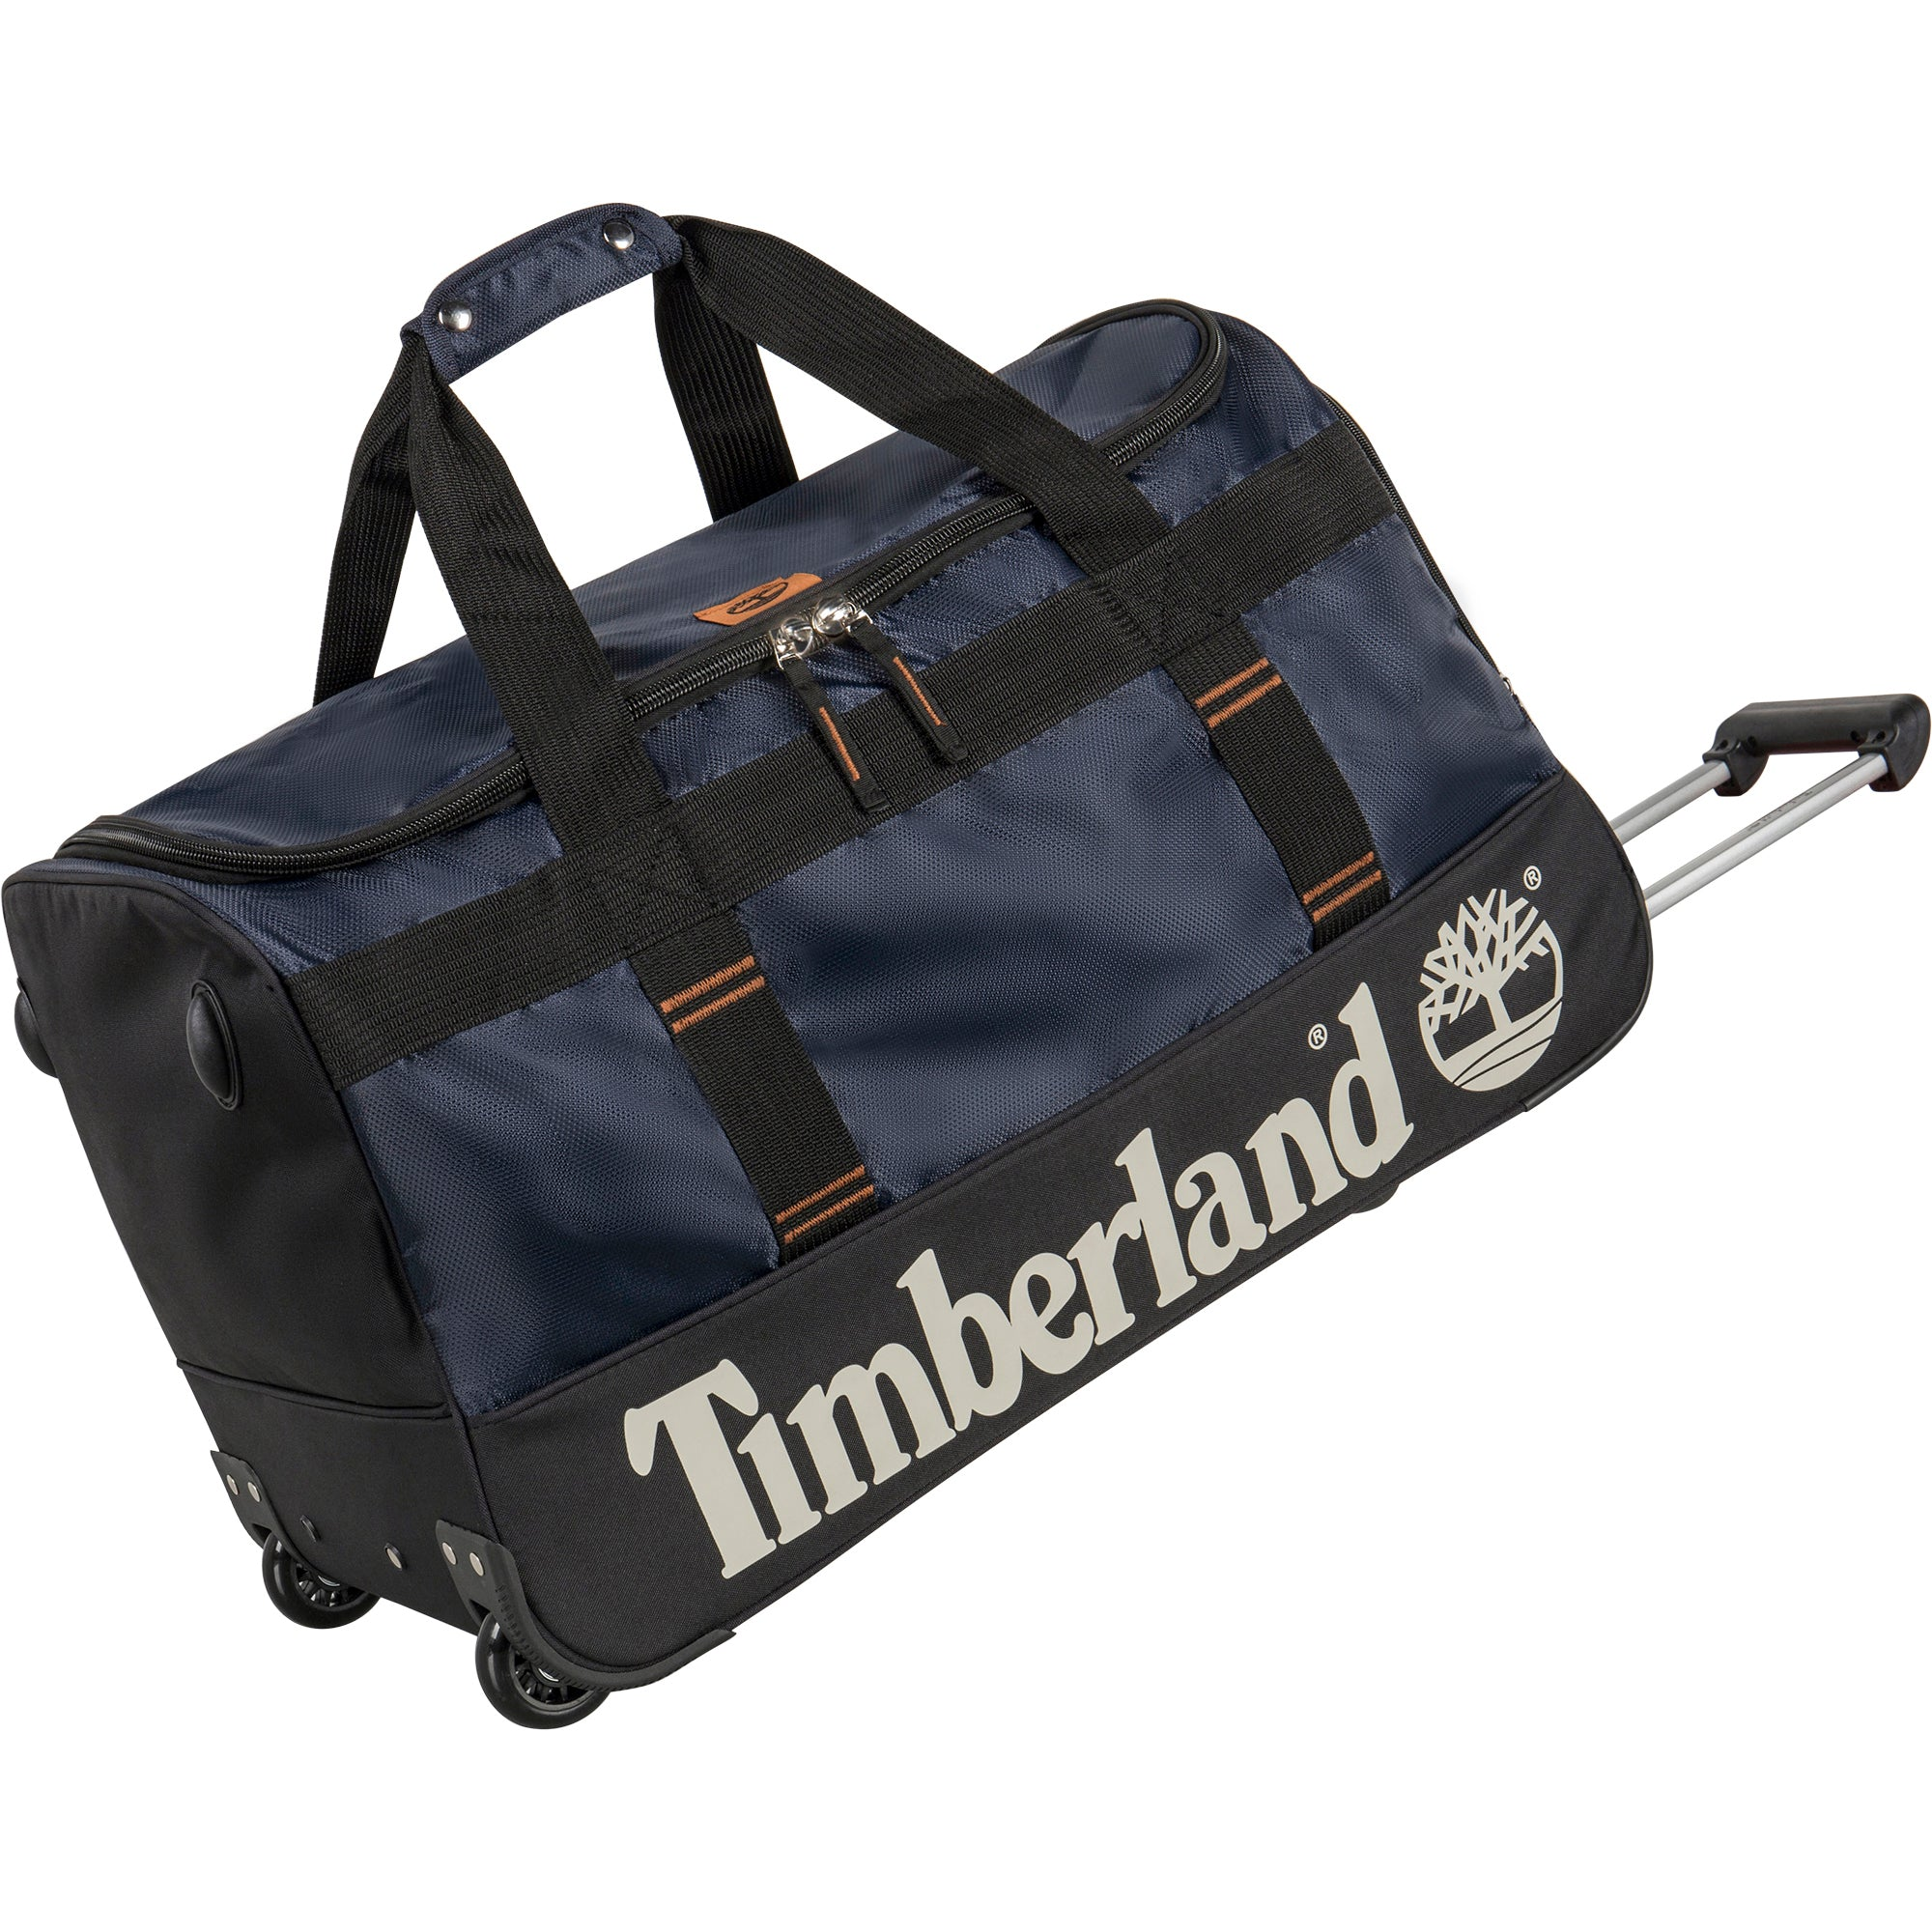 77abe4b5a9 Timberland Jay Peak Trail 30 inch Wheeled Duffle – Luggage Guy